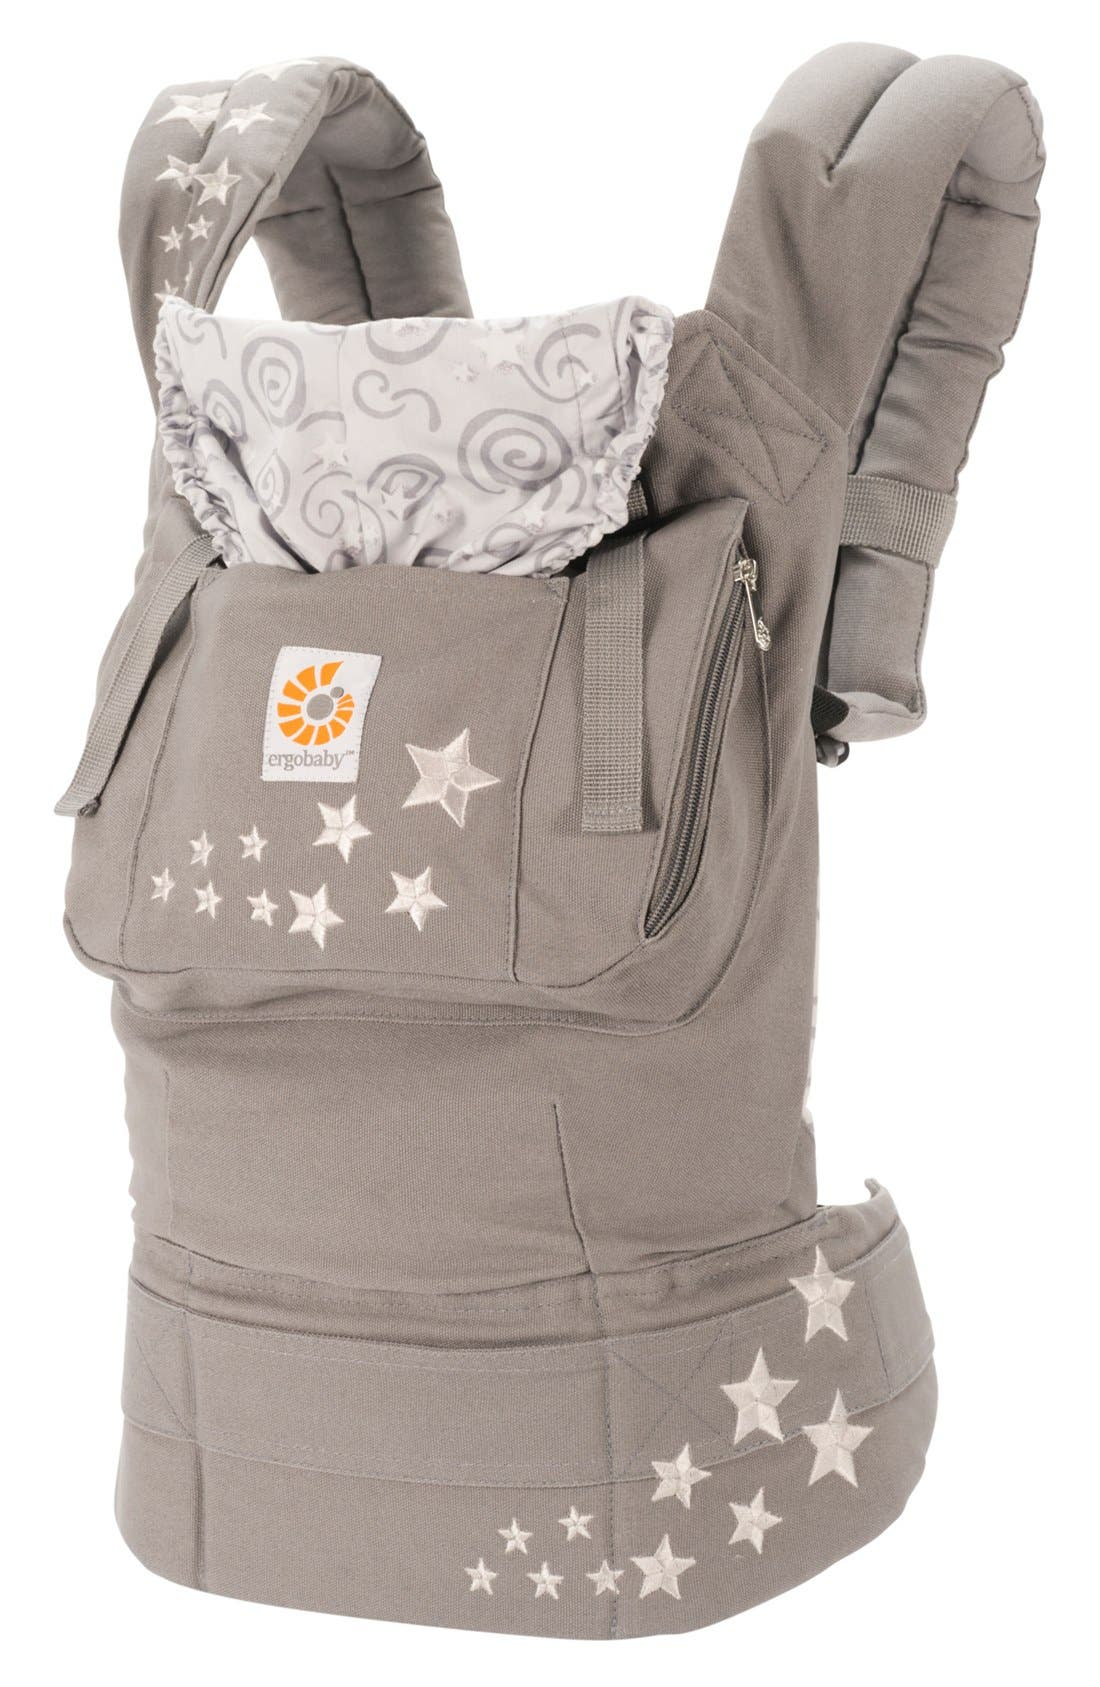 Baby Carrier,                             Main thumbnail 1, color,                             Galaxy Grey/ Grey